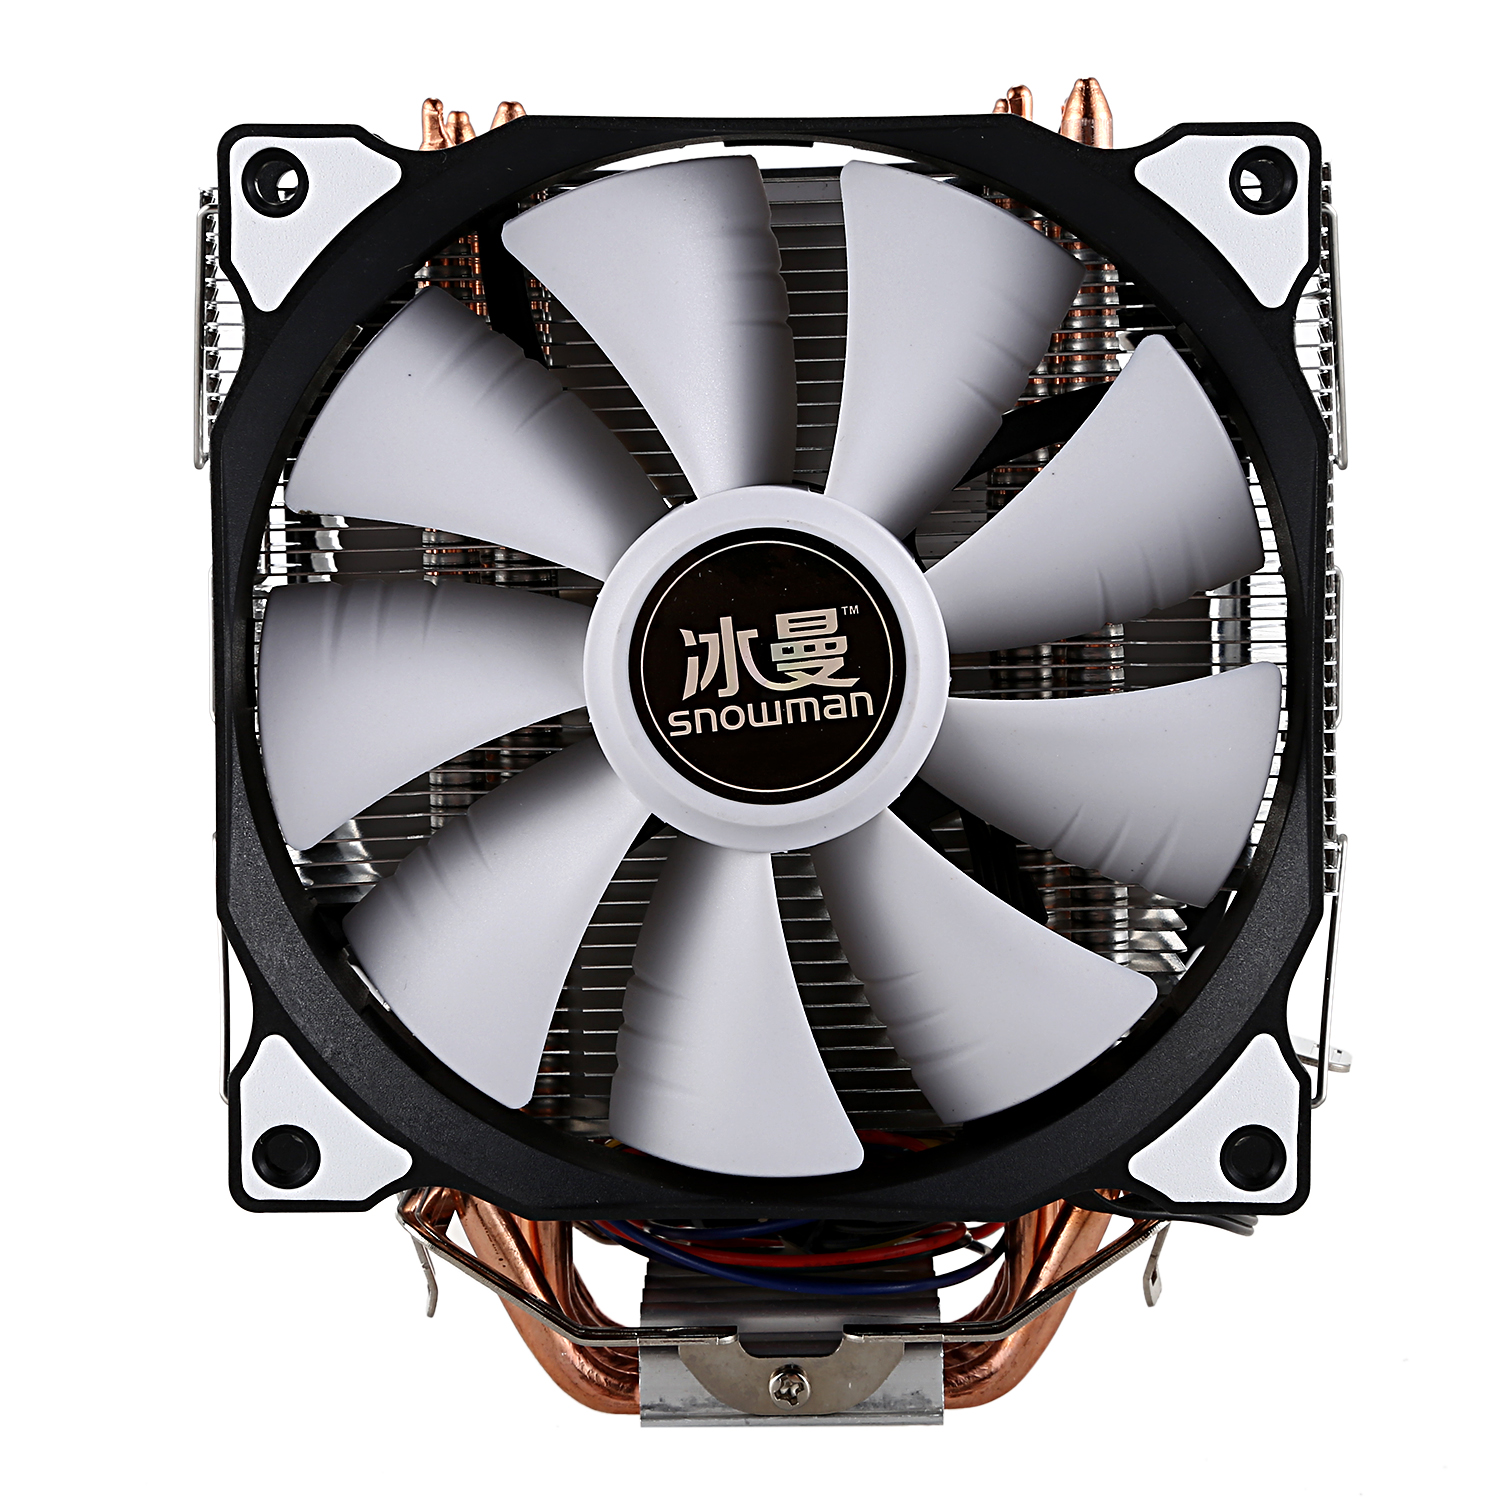 US $20 21 16% OFF|SNOWMAN CPU Cooler Master 5 Direct Contact Heatpipes  freeze Tower Cooling System CPU Cooling Double Fan with PWM 2 Fans-in Fans  &